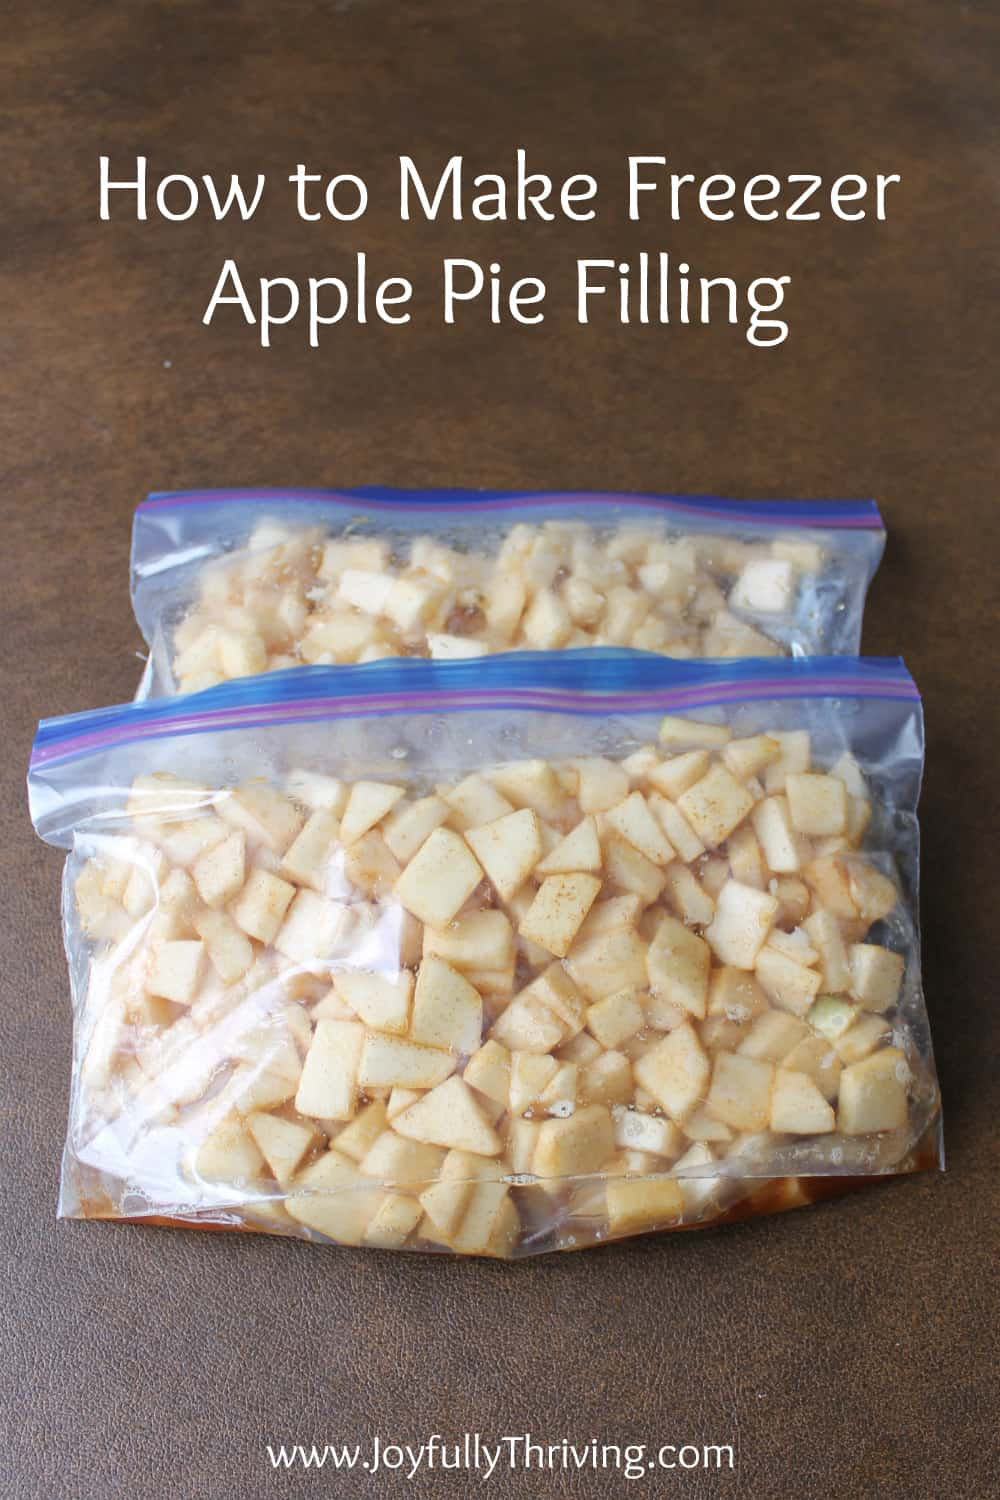 How to Make Apple Pie Filling for the Freezer - What a great idea! I love homemade apple pie and love how easy it is to freeze apple pie filling. Great idea!